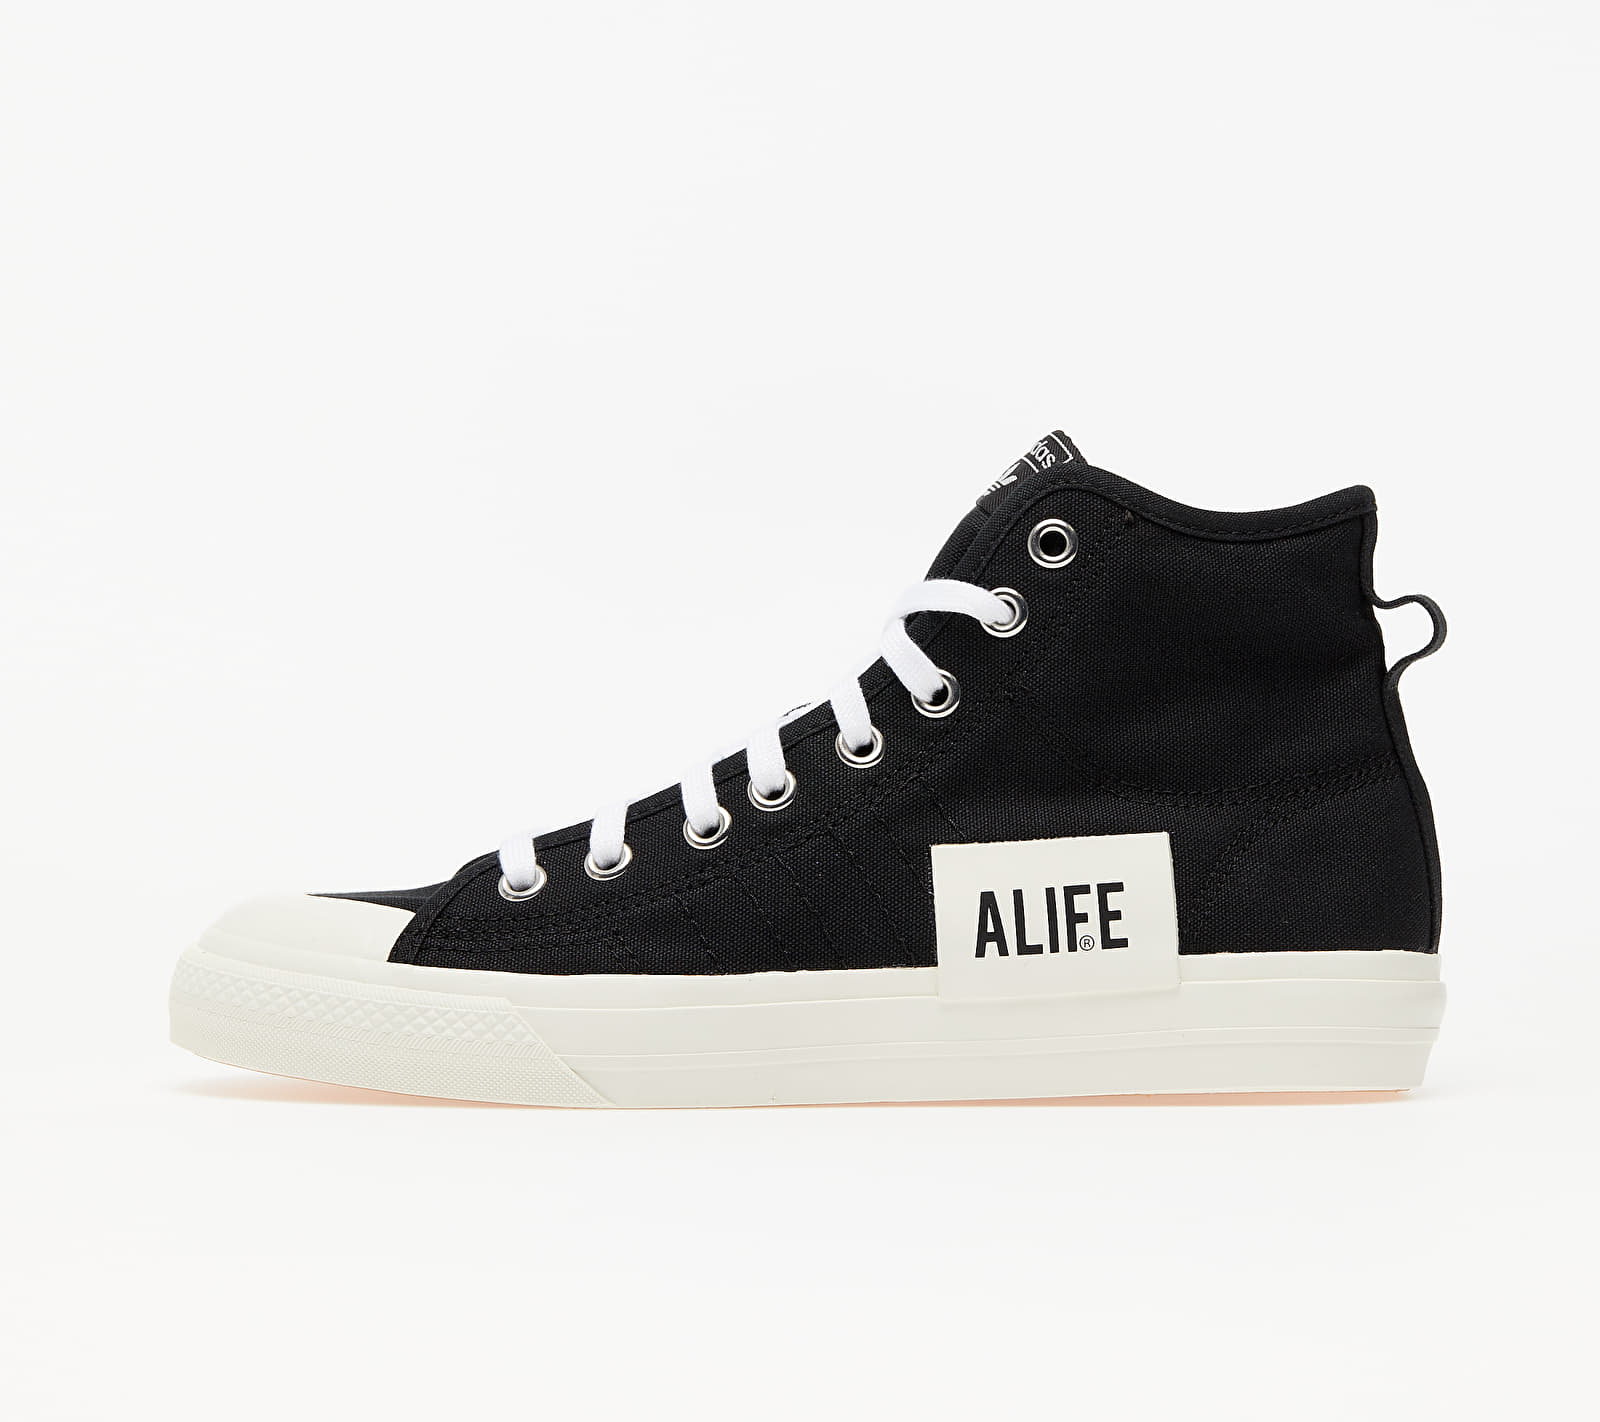 adidas x ALIFE Nizza Hi Core Black/ Off White/ Off White EUR 36